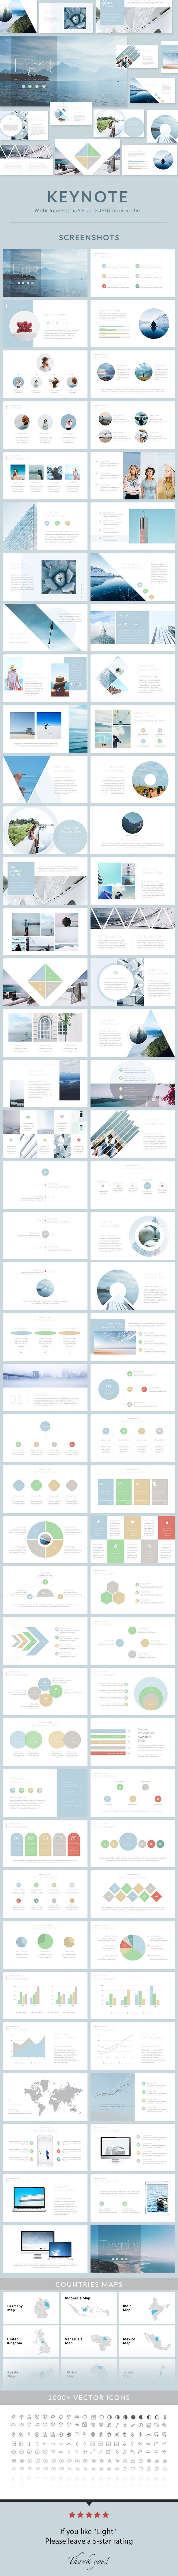 Light - Keynote Presentation Template - Business Keynote Templates